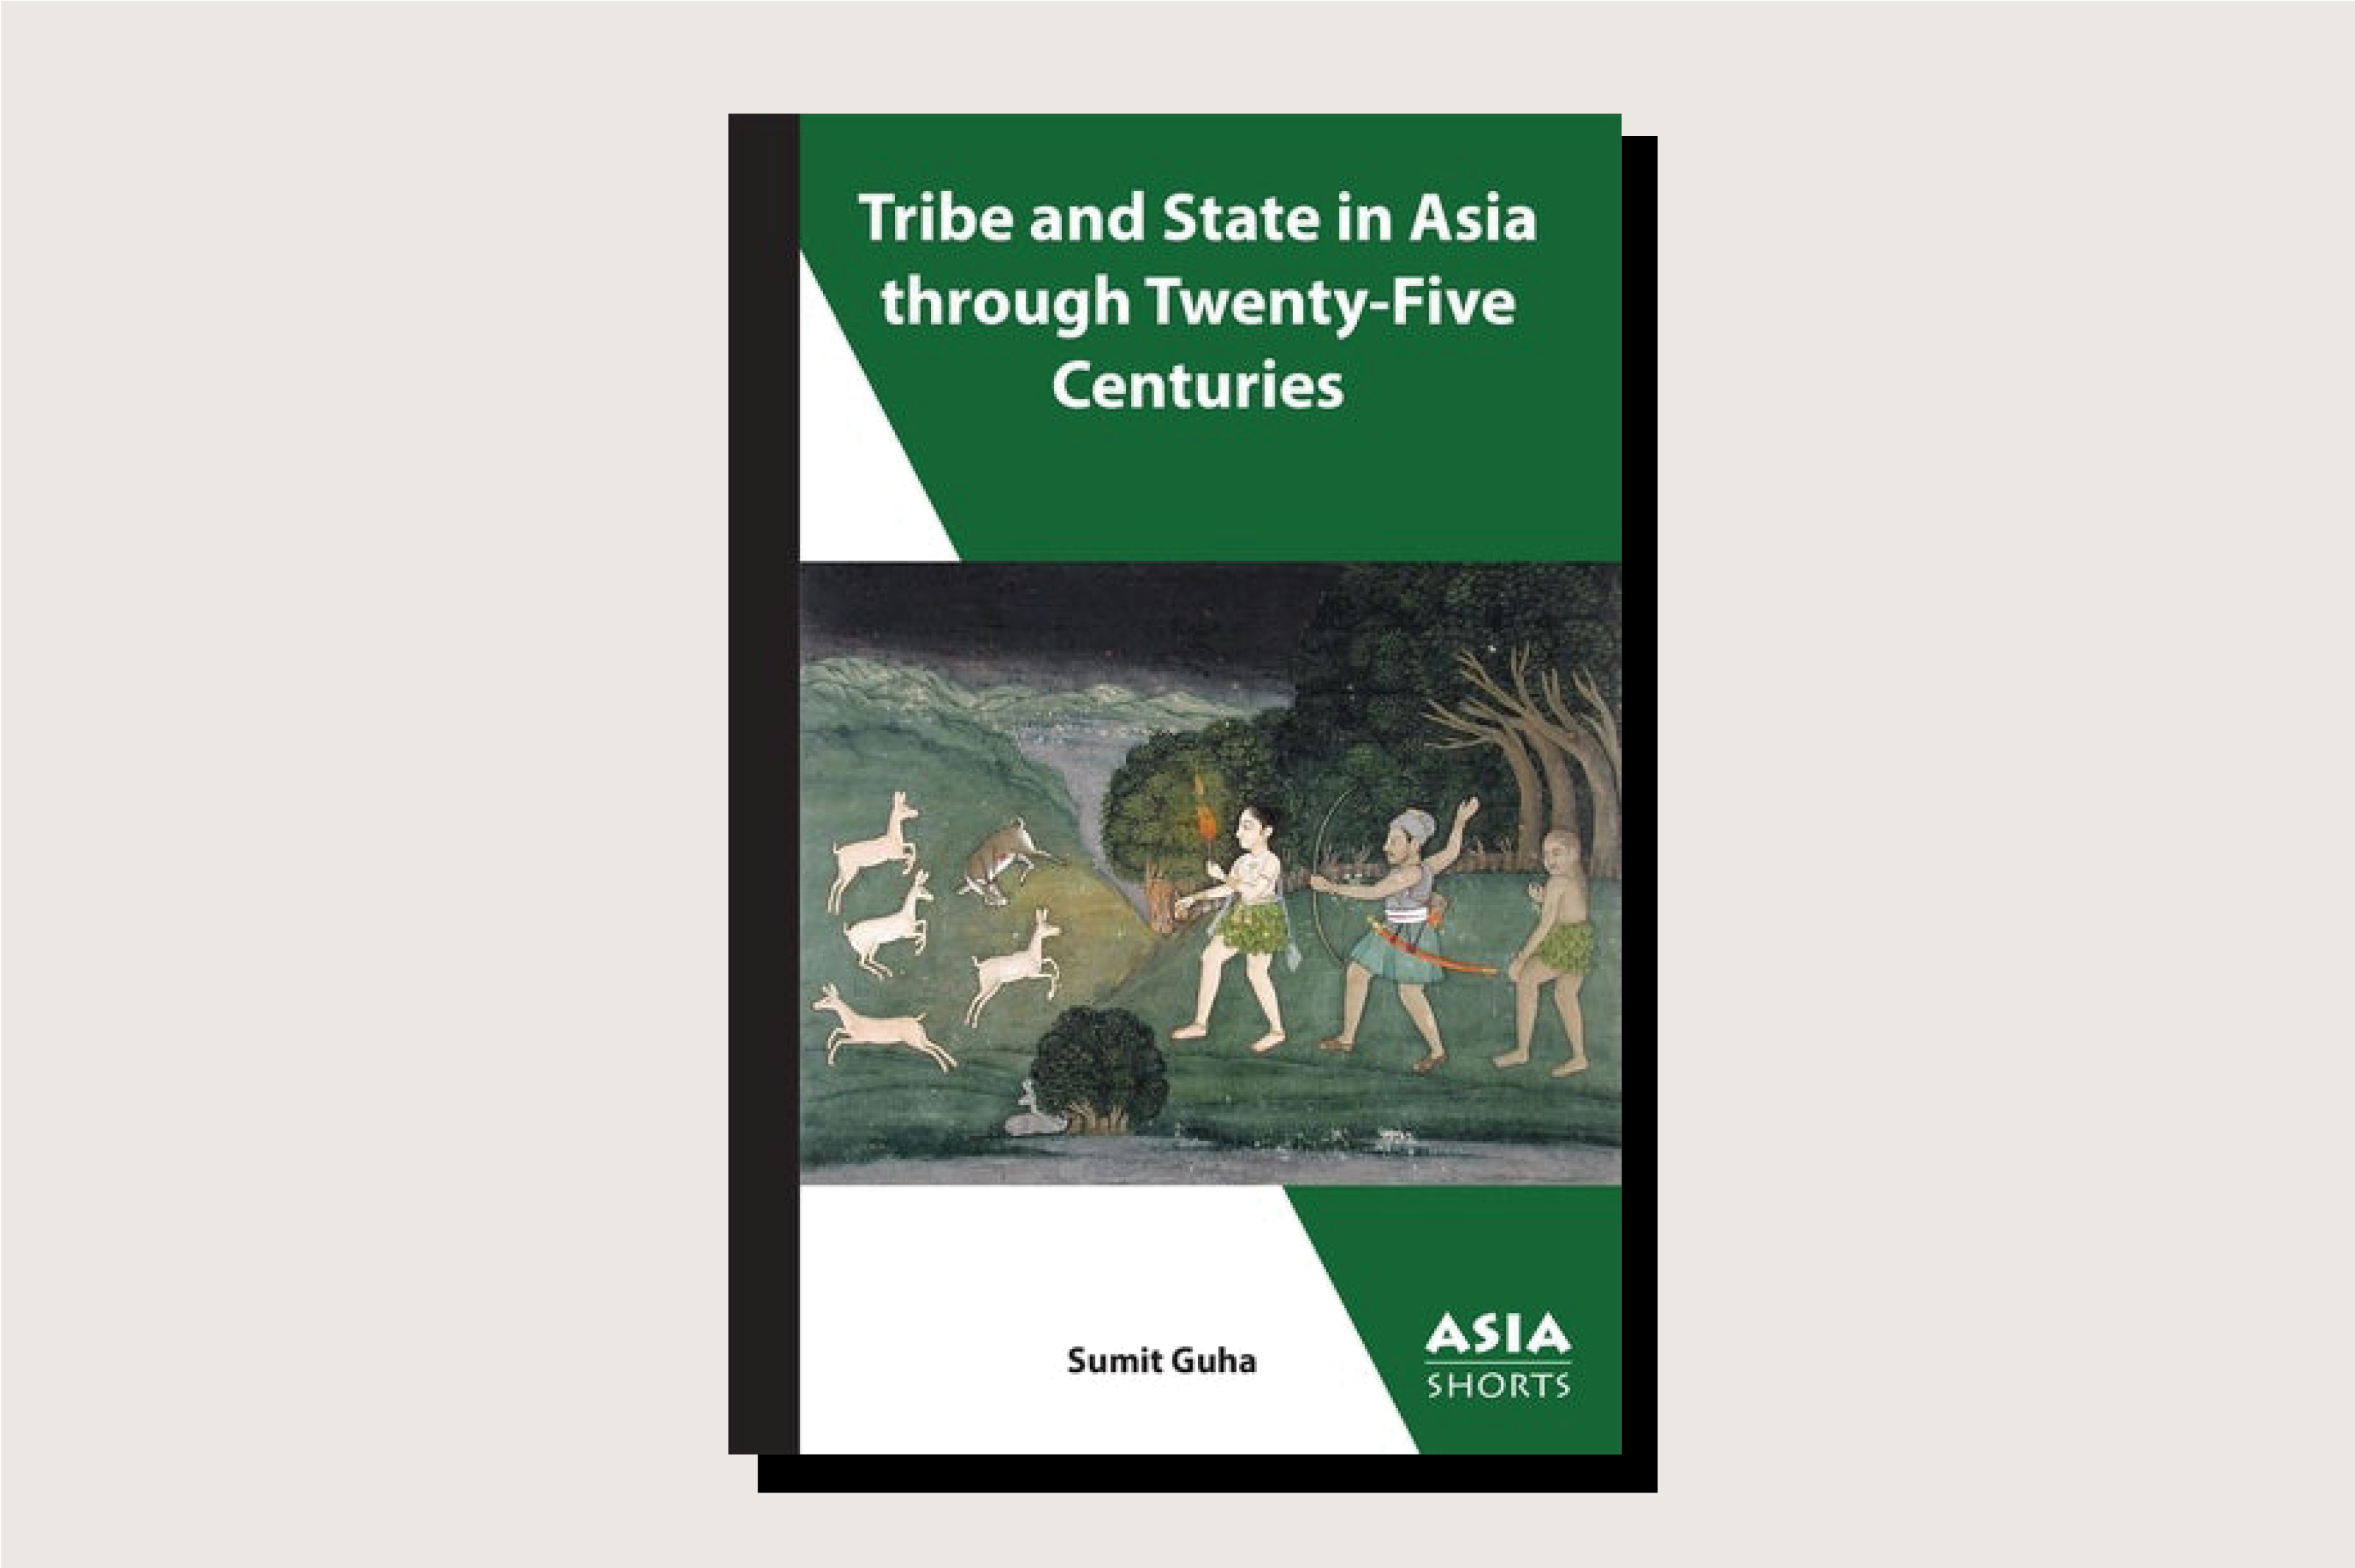 <em>Tribe and State in Asia through Twenty-Five Centuries</em>, Sumit Guha, Association for Asian Studies Publications, 156 pp., , August 2021.